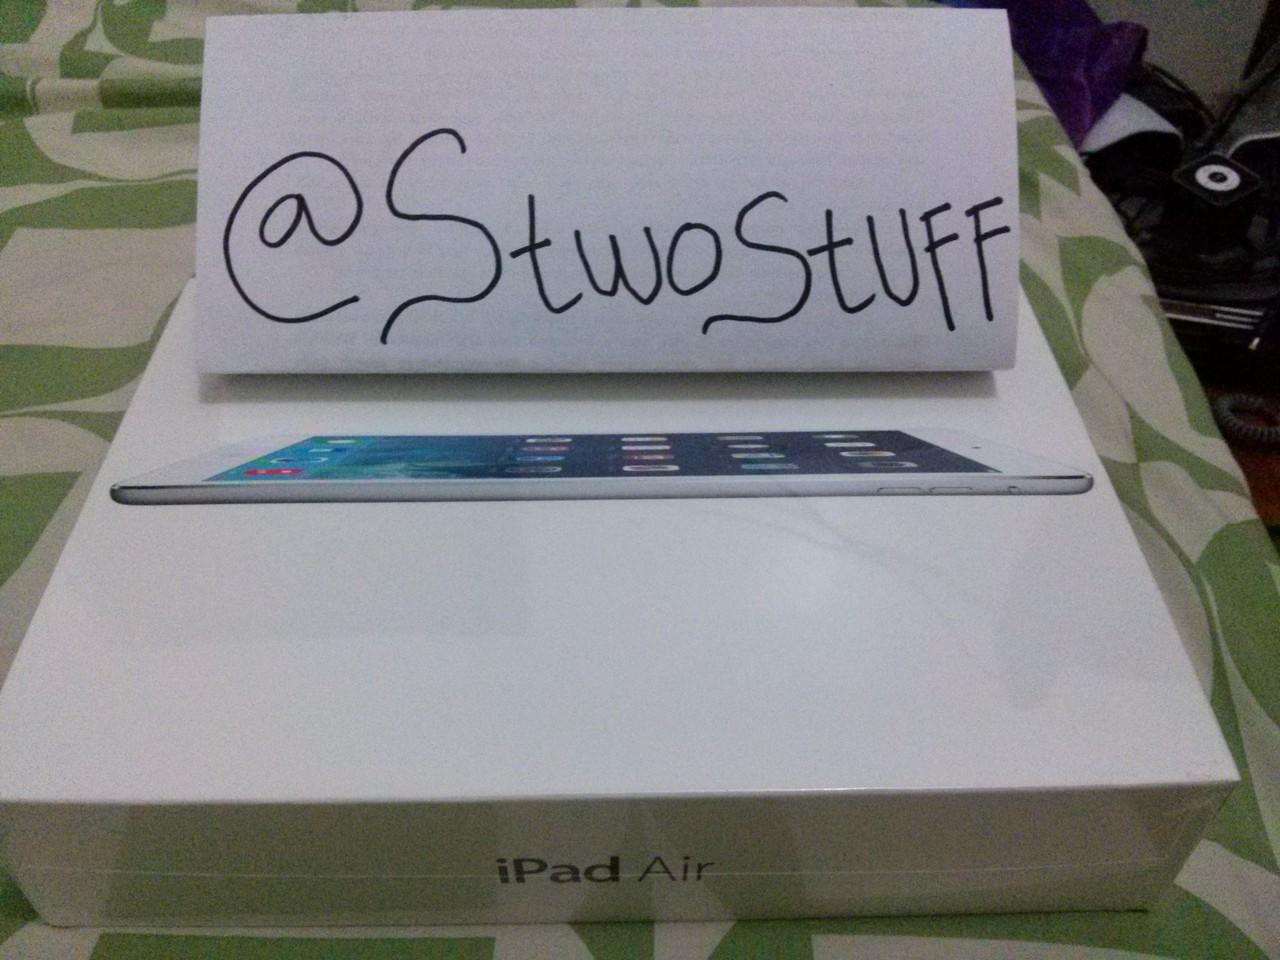 iPad Air NEW 16GB Wi-Fi only... 6,5 negooo cuma 1 unit. Masih segel!